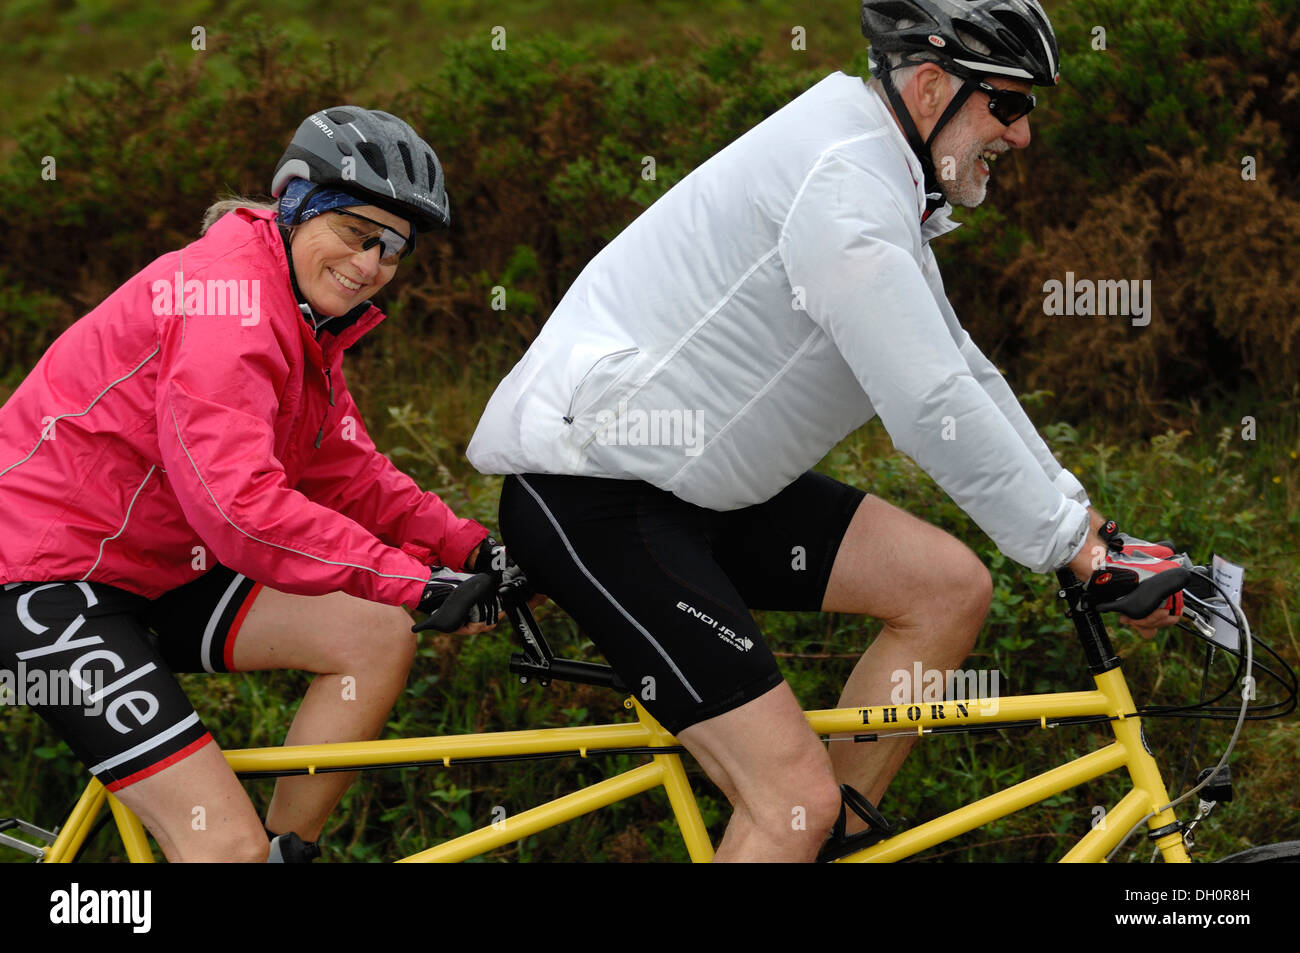 A man and woman on a tandem riding the Dartmoor classic cyclosportive 2013 - Stock Image